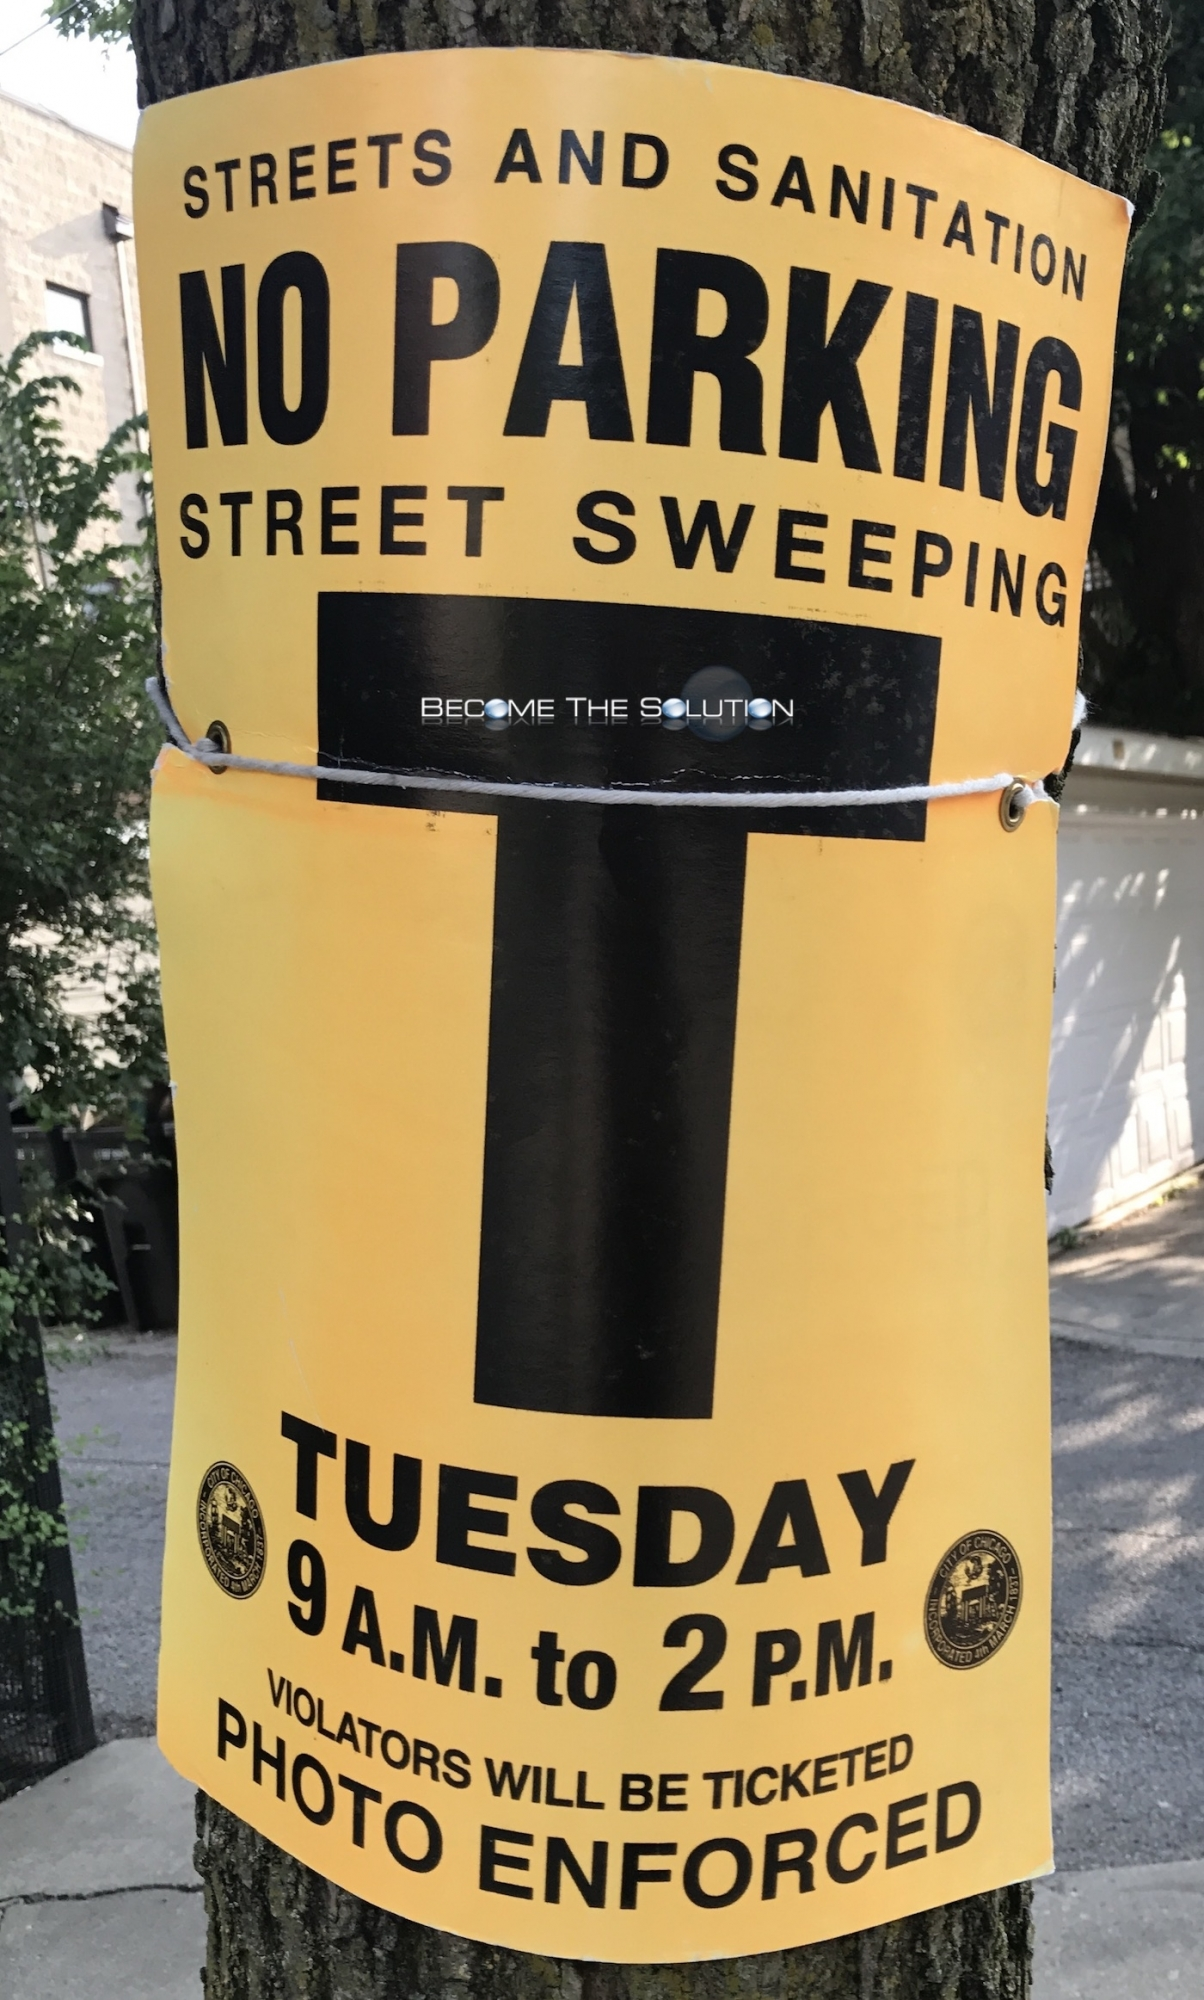 Chicago Streets and Sanitation No Parking Street Sweeping Tuesday Sign